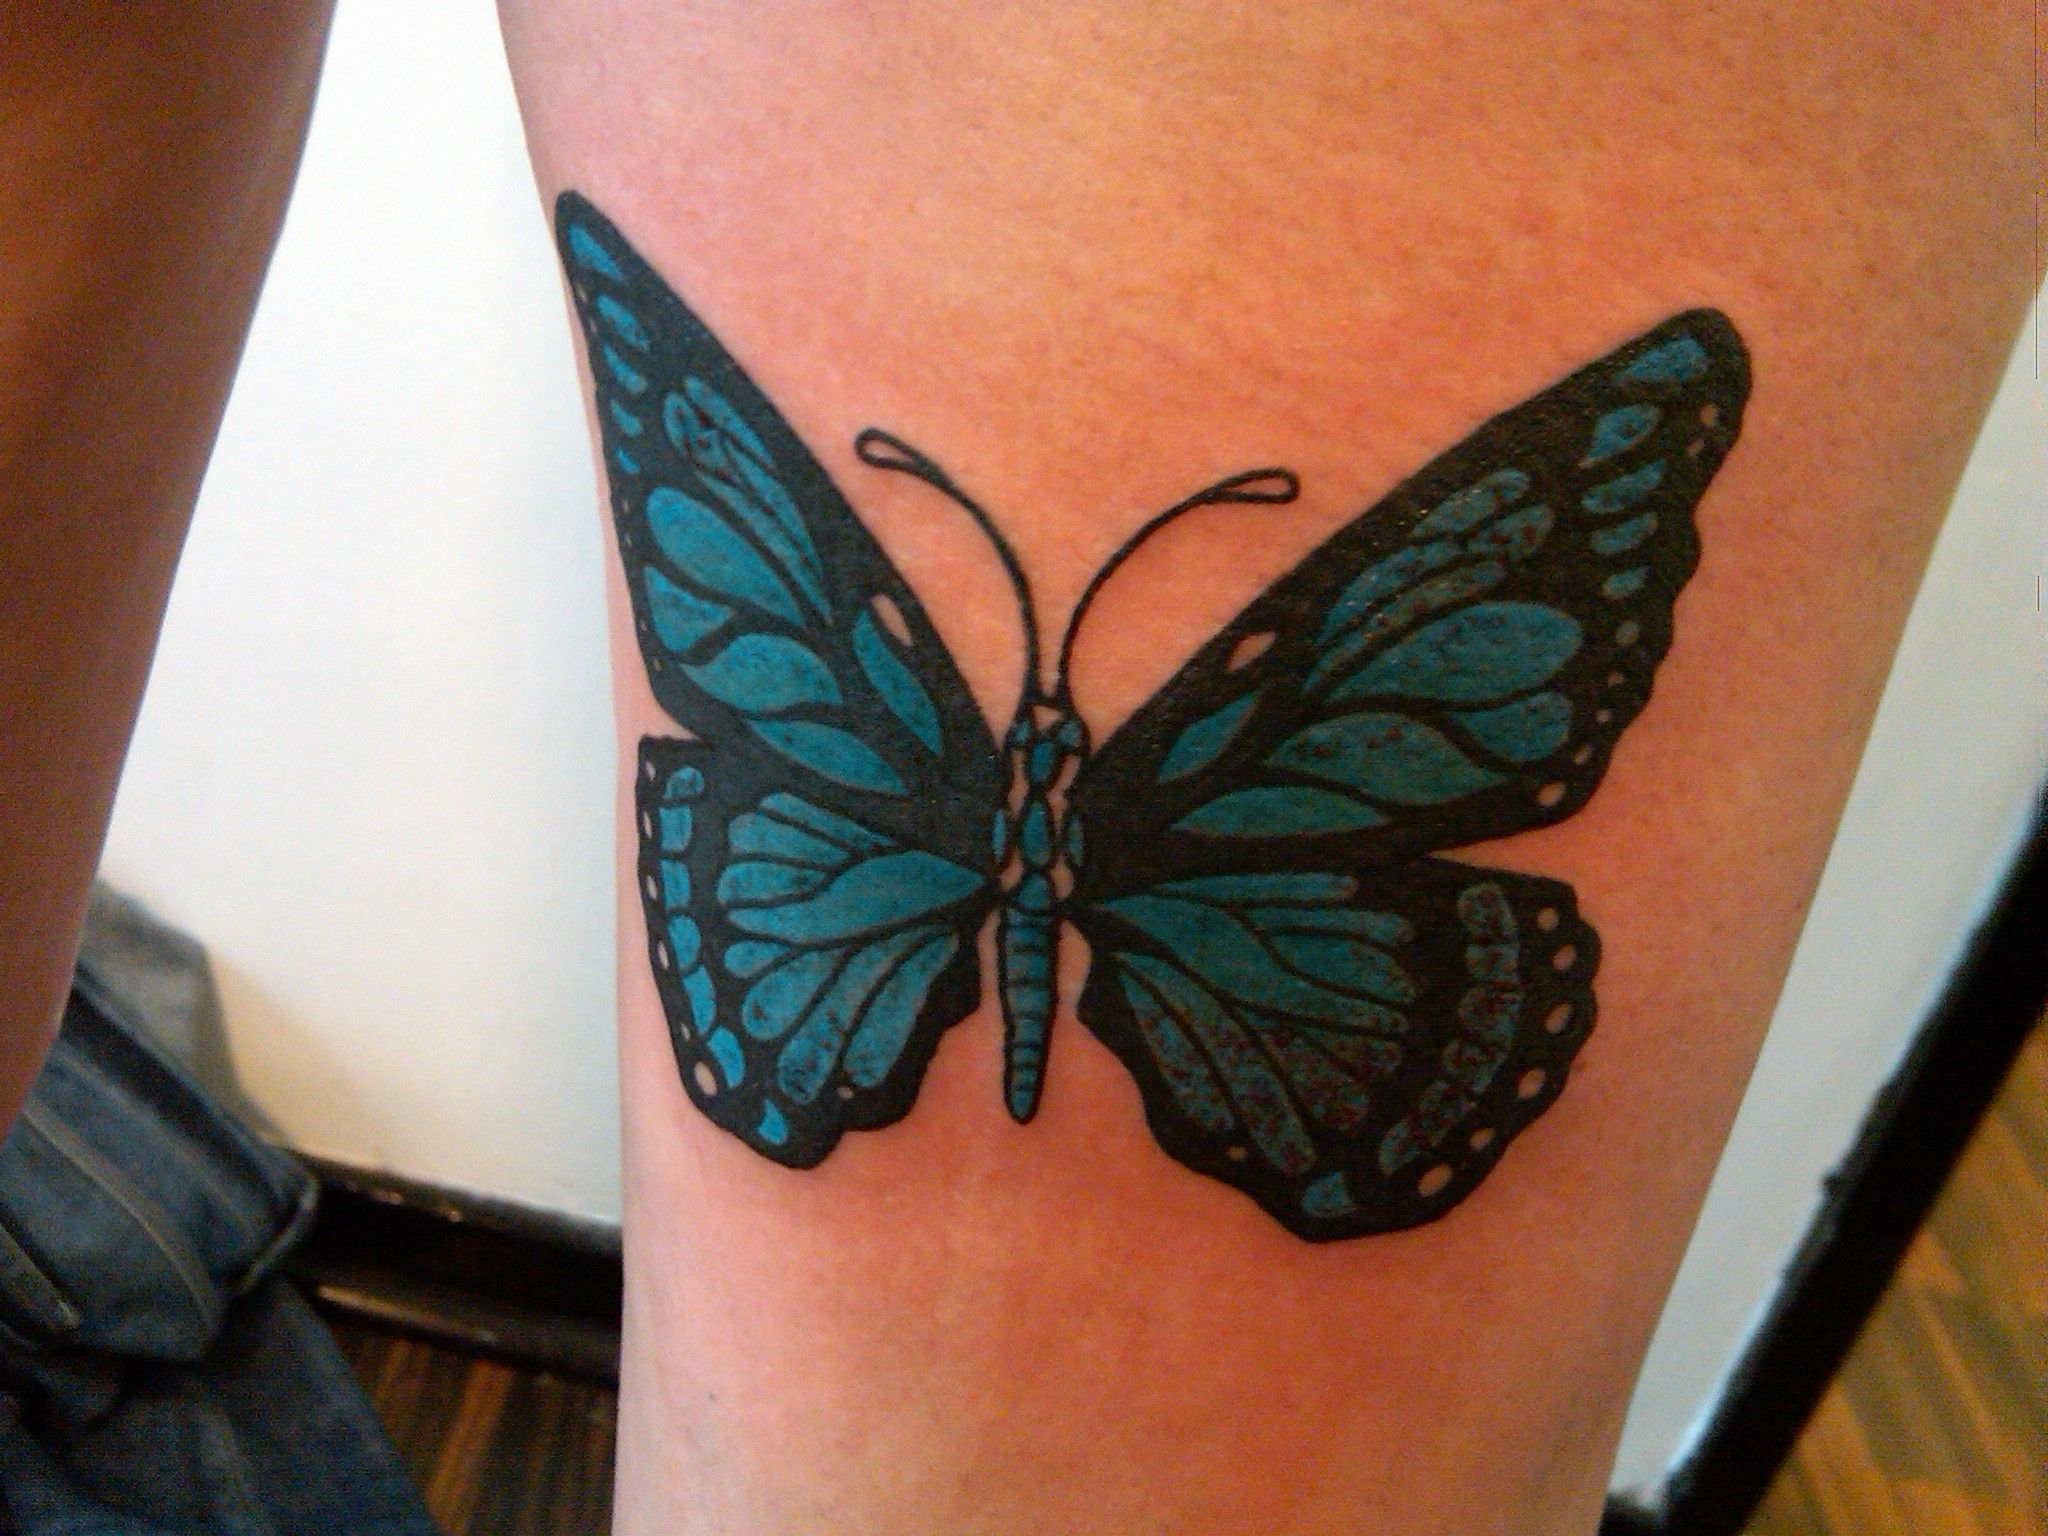 The o jays butterfly tattoos and clothes on pinterest - My Own Butterfly Tattoo This Photograph Was Taken The Moment The Tattoo Was Finished And